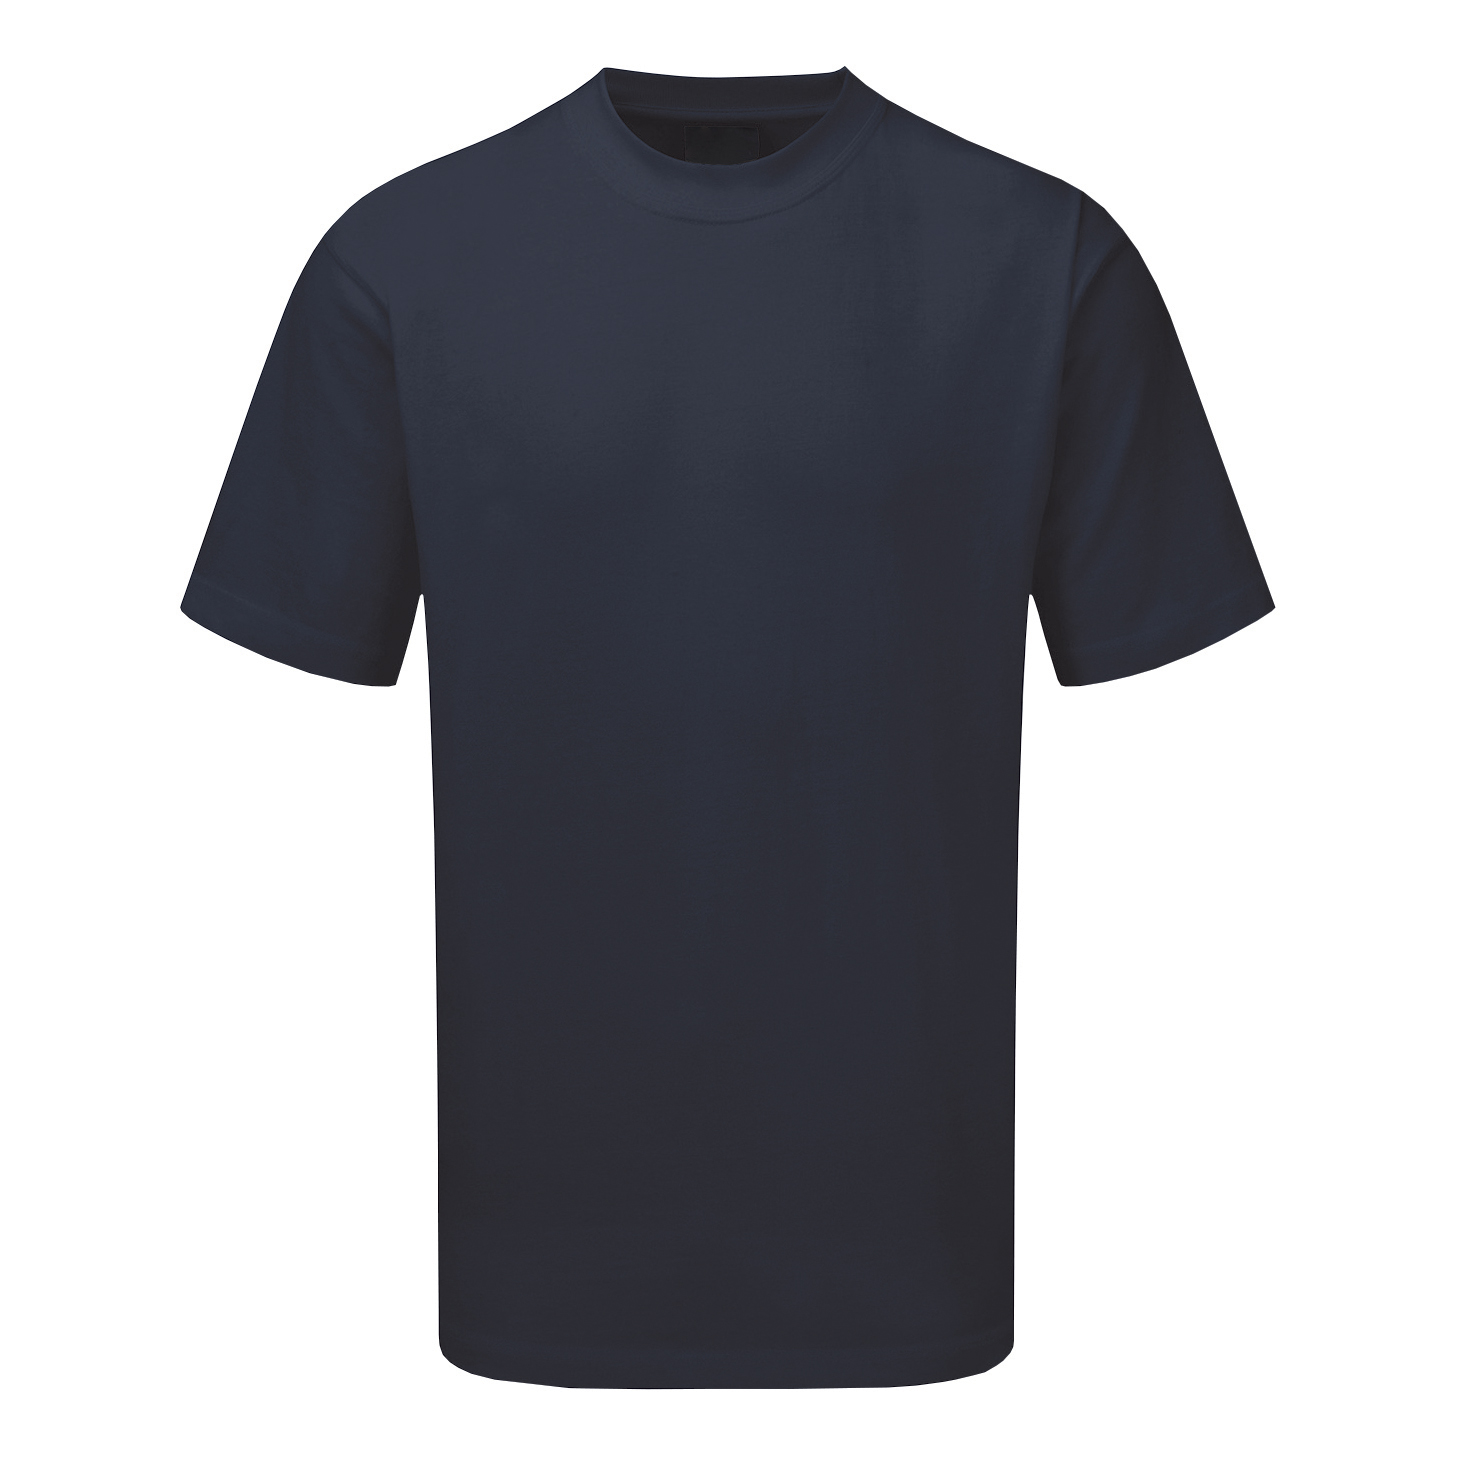 Premium T-Shirt Polycotton Triple Stitched Small Navy Blue